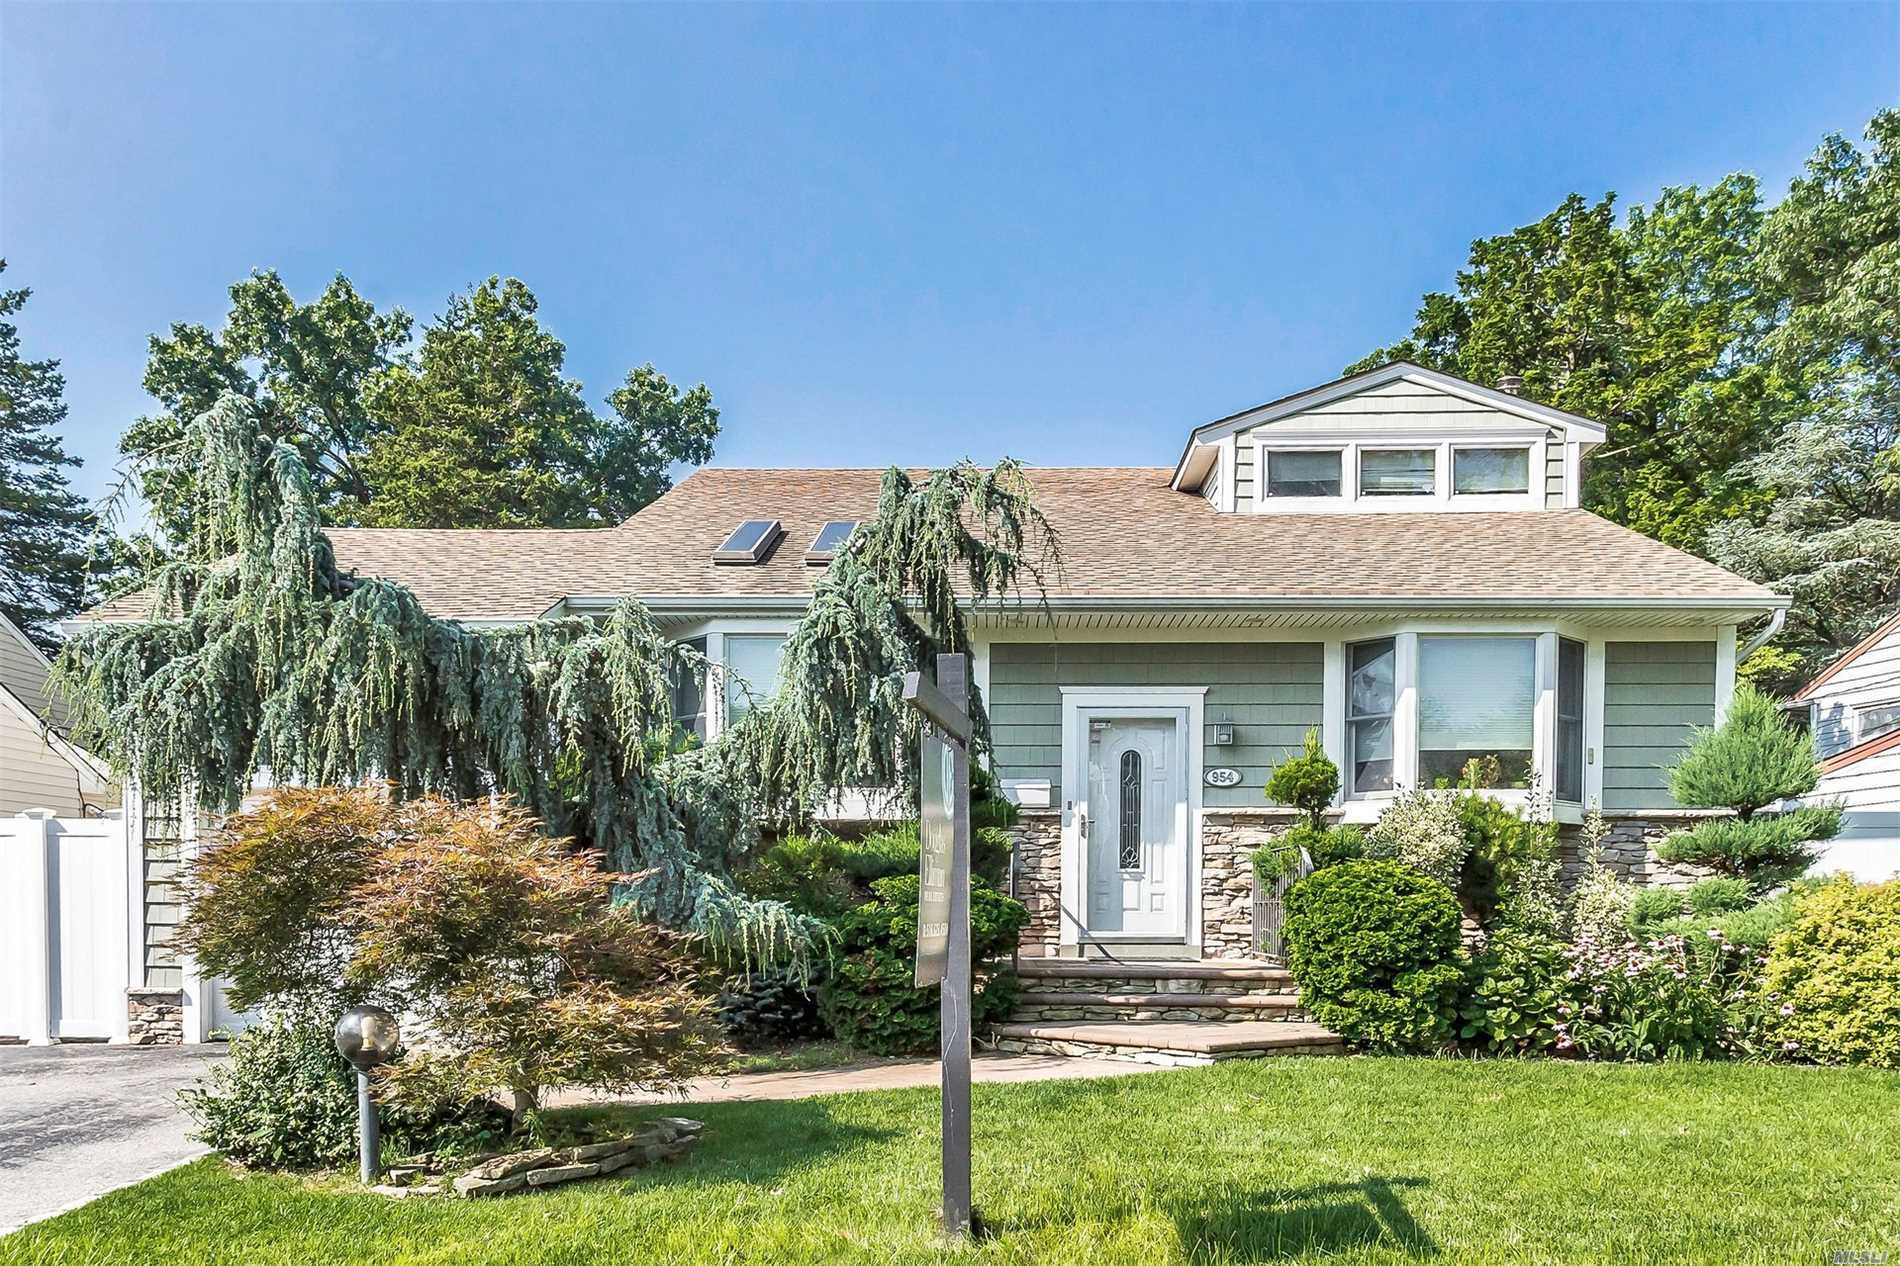 Mint Move-In Condition Updated 5 Level, 5 Bdrm 3 Full Bath Open Floor Plan, Front To Back Split! Great Curb Appeal, Beautifully Landscaped! Vaulted Living Rm, Fdr, Eik, Hardwood Floors, Cac, Igs, Ig Pool, Master Suite With Plenty Of Closets! Won't Last!!